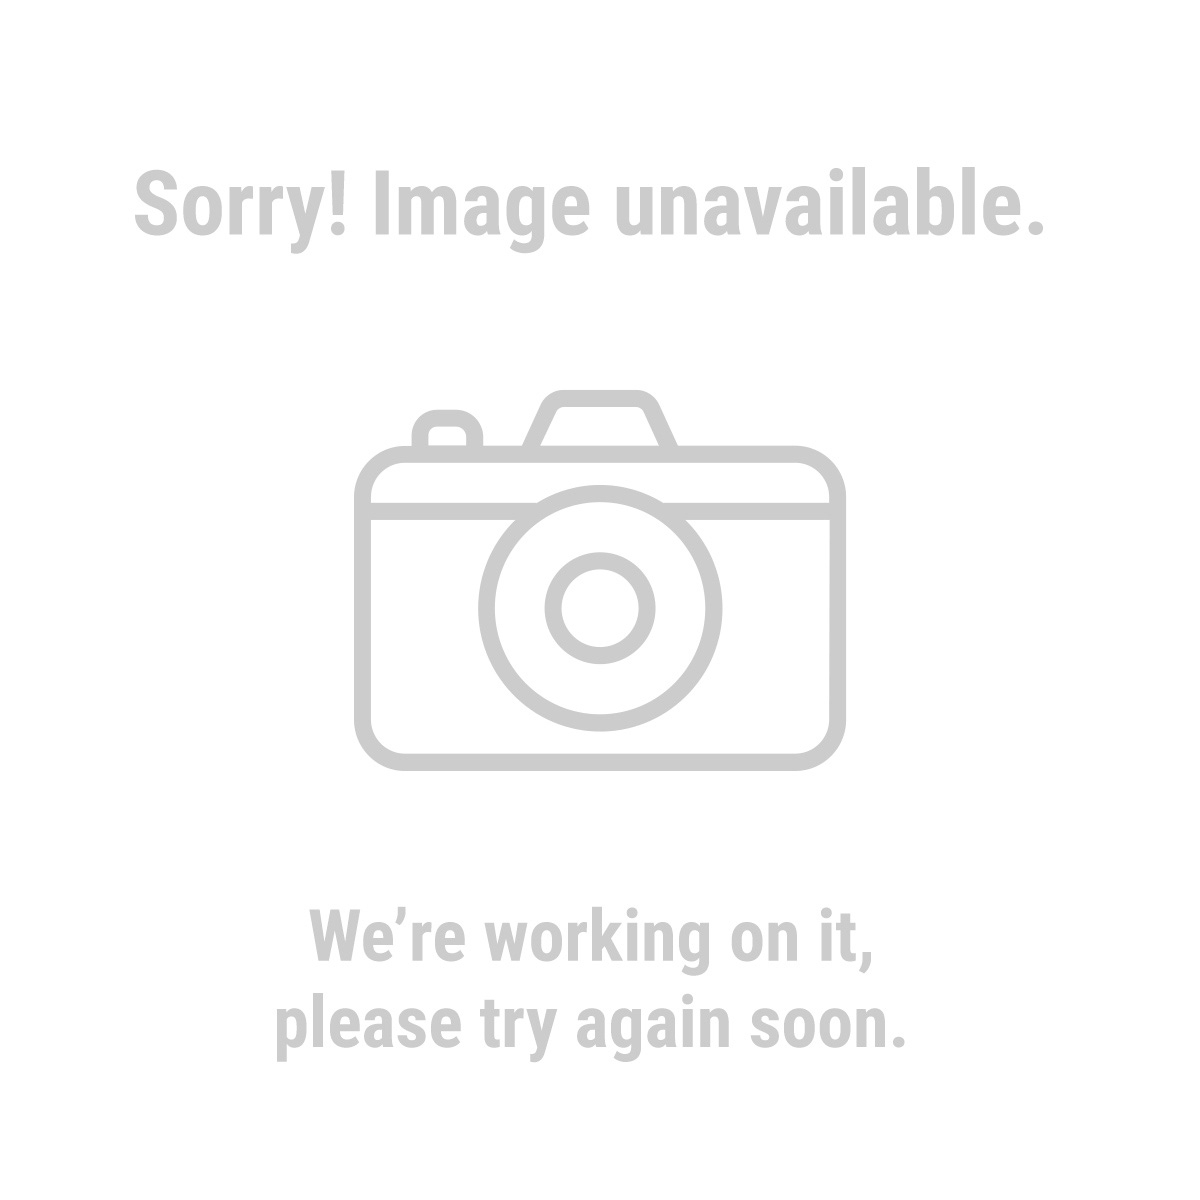 I\'m determined to make an underhood worklight/lightbar. Looking for ...